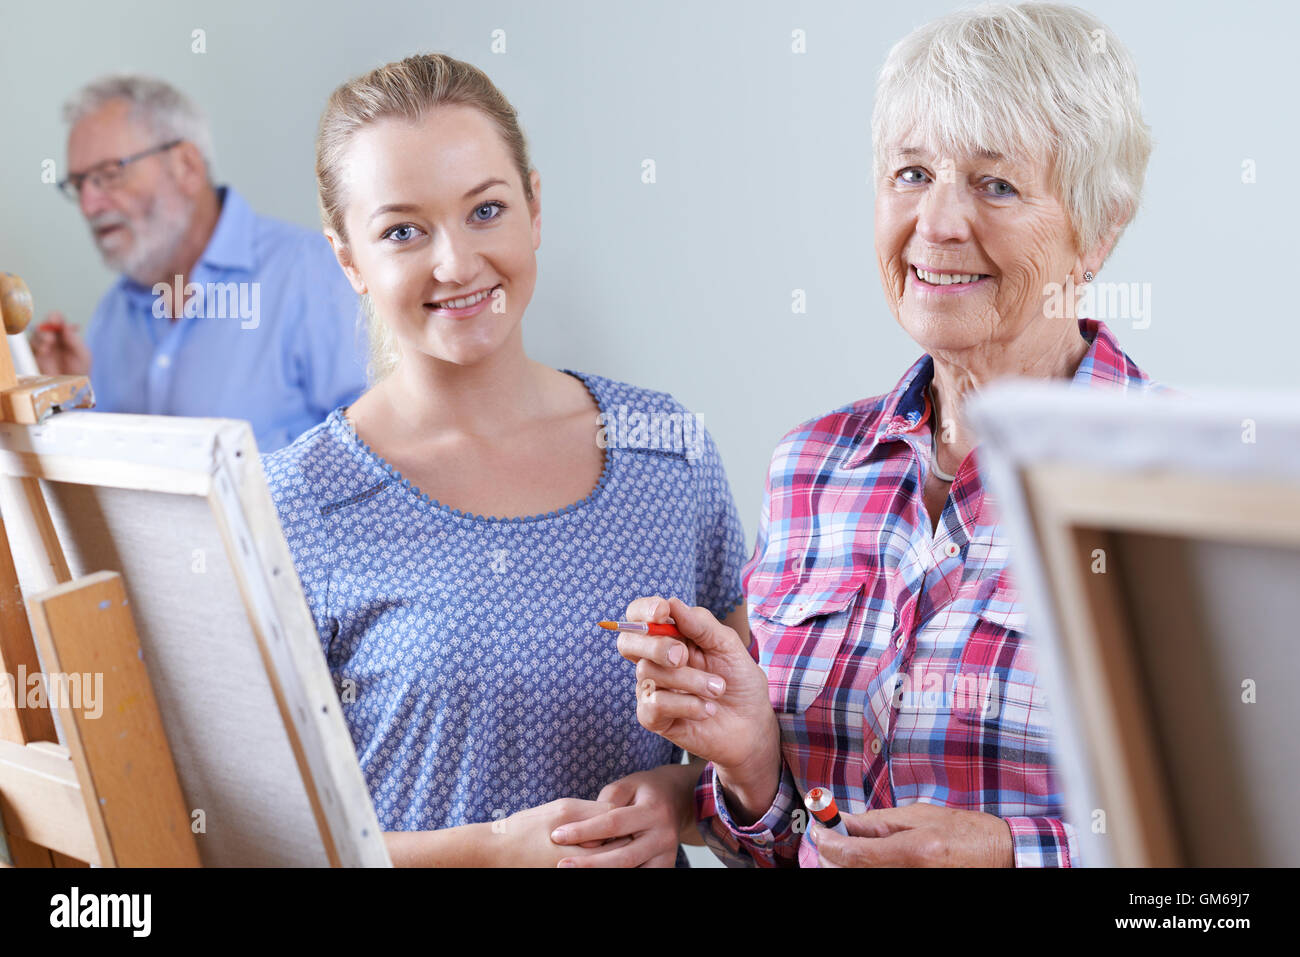 Seniors Attending Painting Class With Teacher - Stock Image